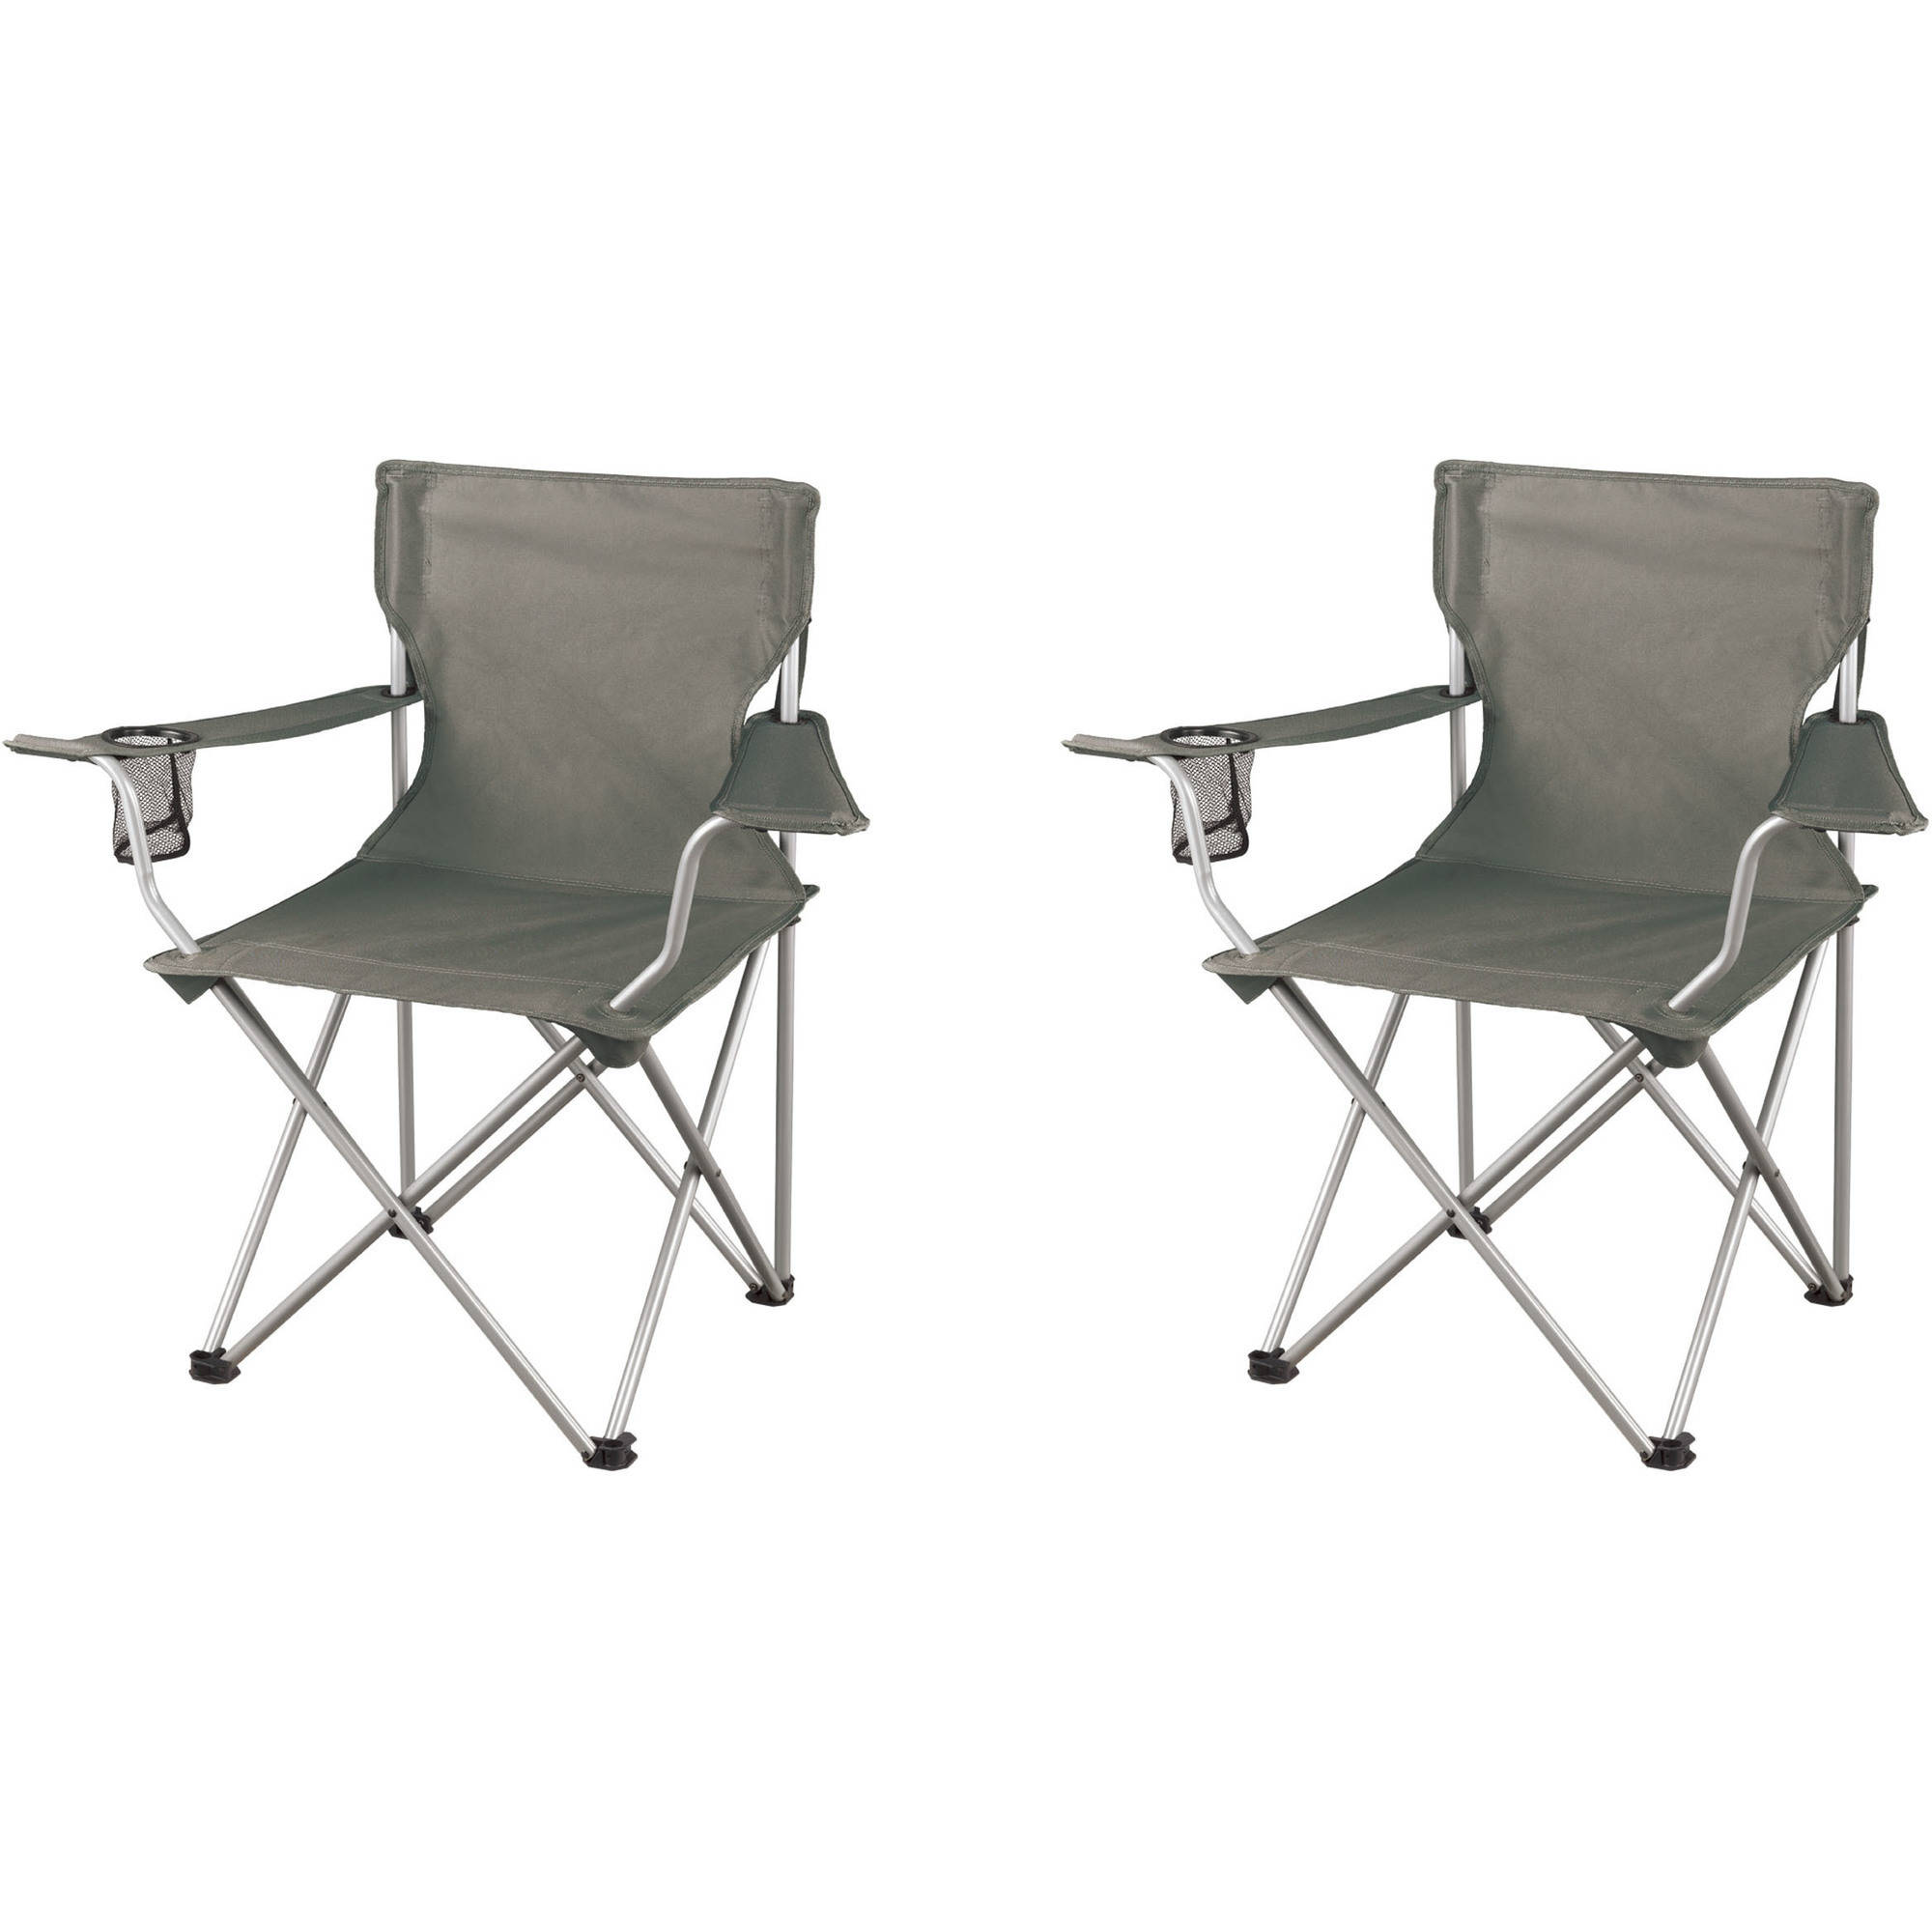 Primos Hunting Double Bull Qs3 Magnum Ground Swat Camo Chair Source  Consider These Por Products